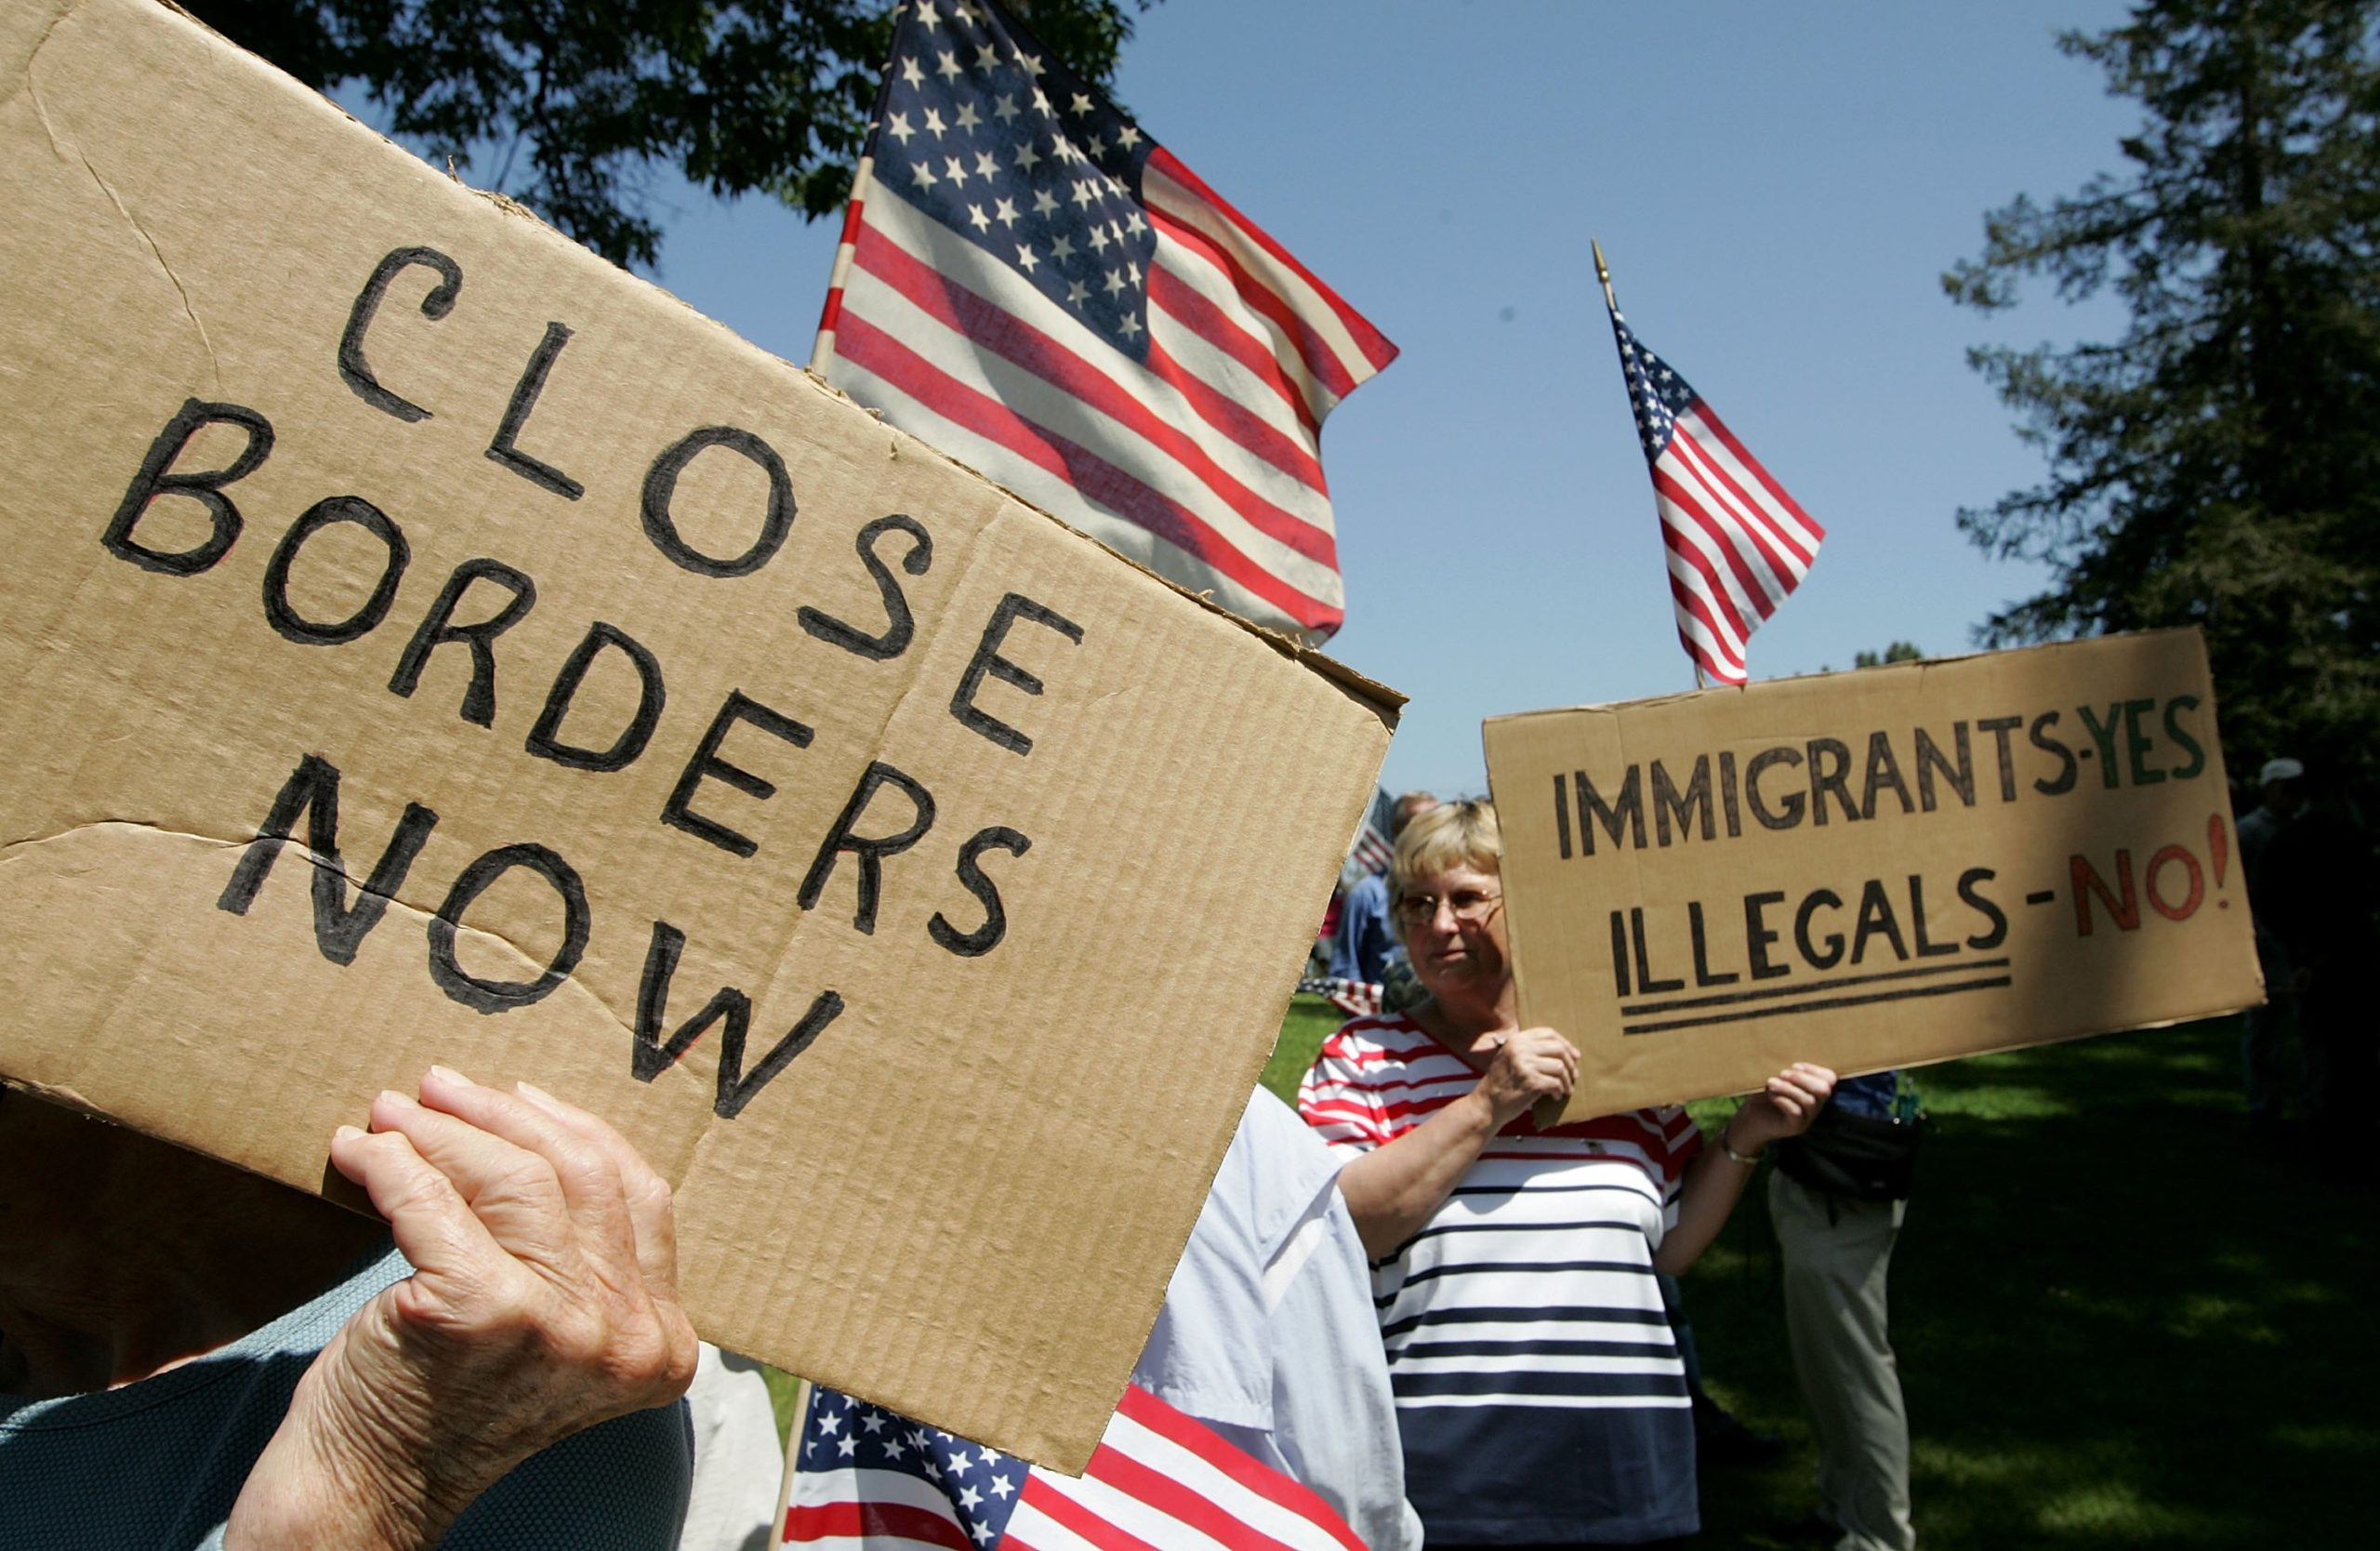 SANTA CLARA, CA - MAY 05: Anti-immigration demonstrators hold signs and American flags during an anti-immigration rally May 5, 2006 in Santa Clara, California. Dozens of anti-immigration demonstrators held a rally as similar rallies were held across the country on Cinco de Mayo to protest illegal immigrants. (Photo by Justin Sullivan/Getty Images)